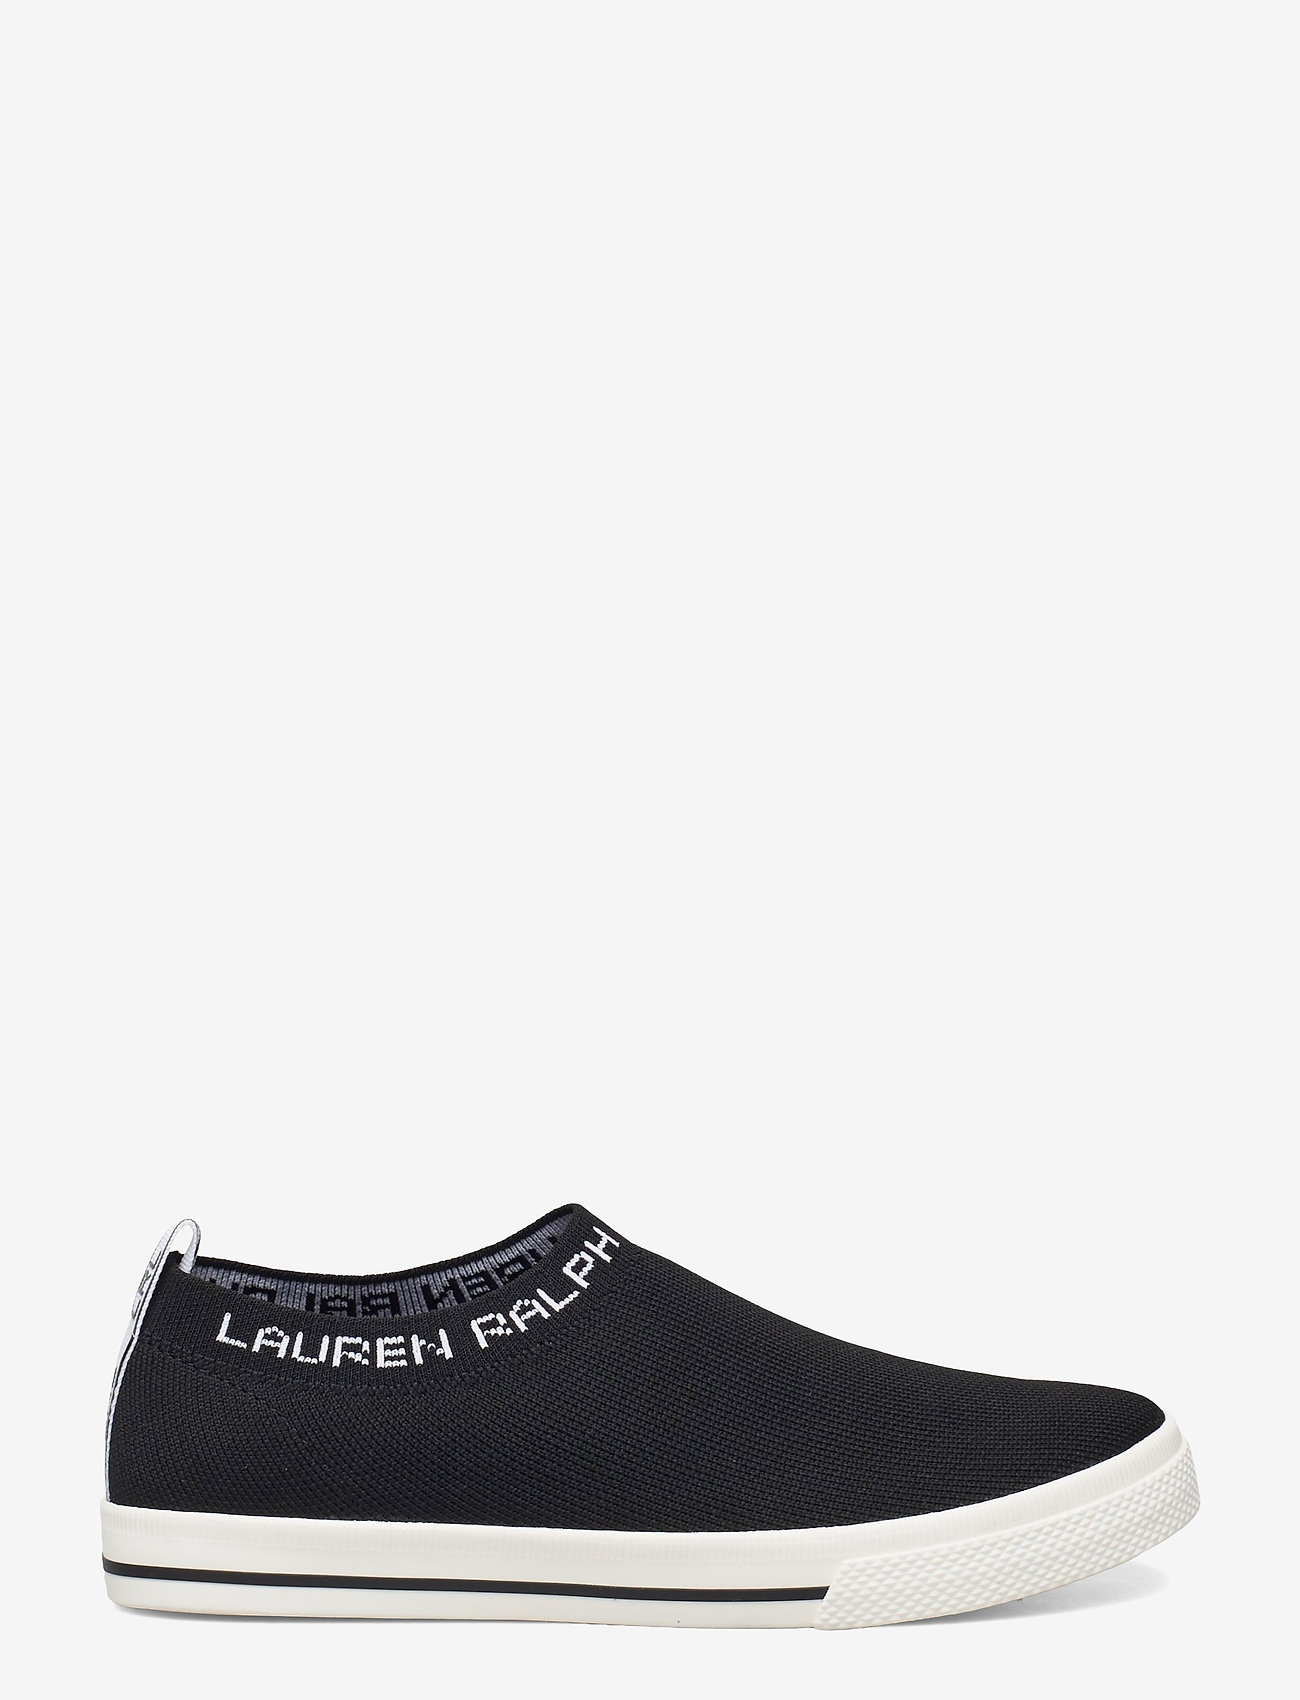 Lauren Ralph Lauren - Jordyn Slip-On Sneaker - slip-on sneakers - black/black - 1